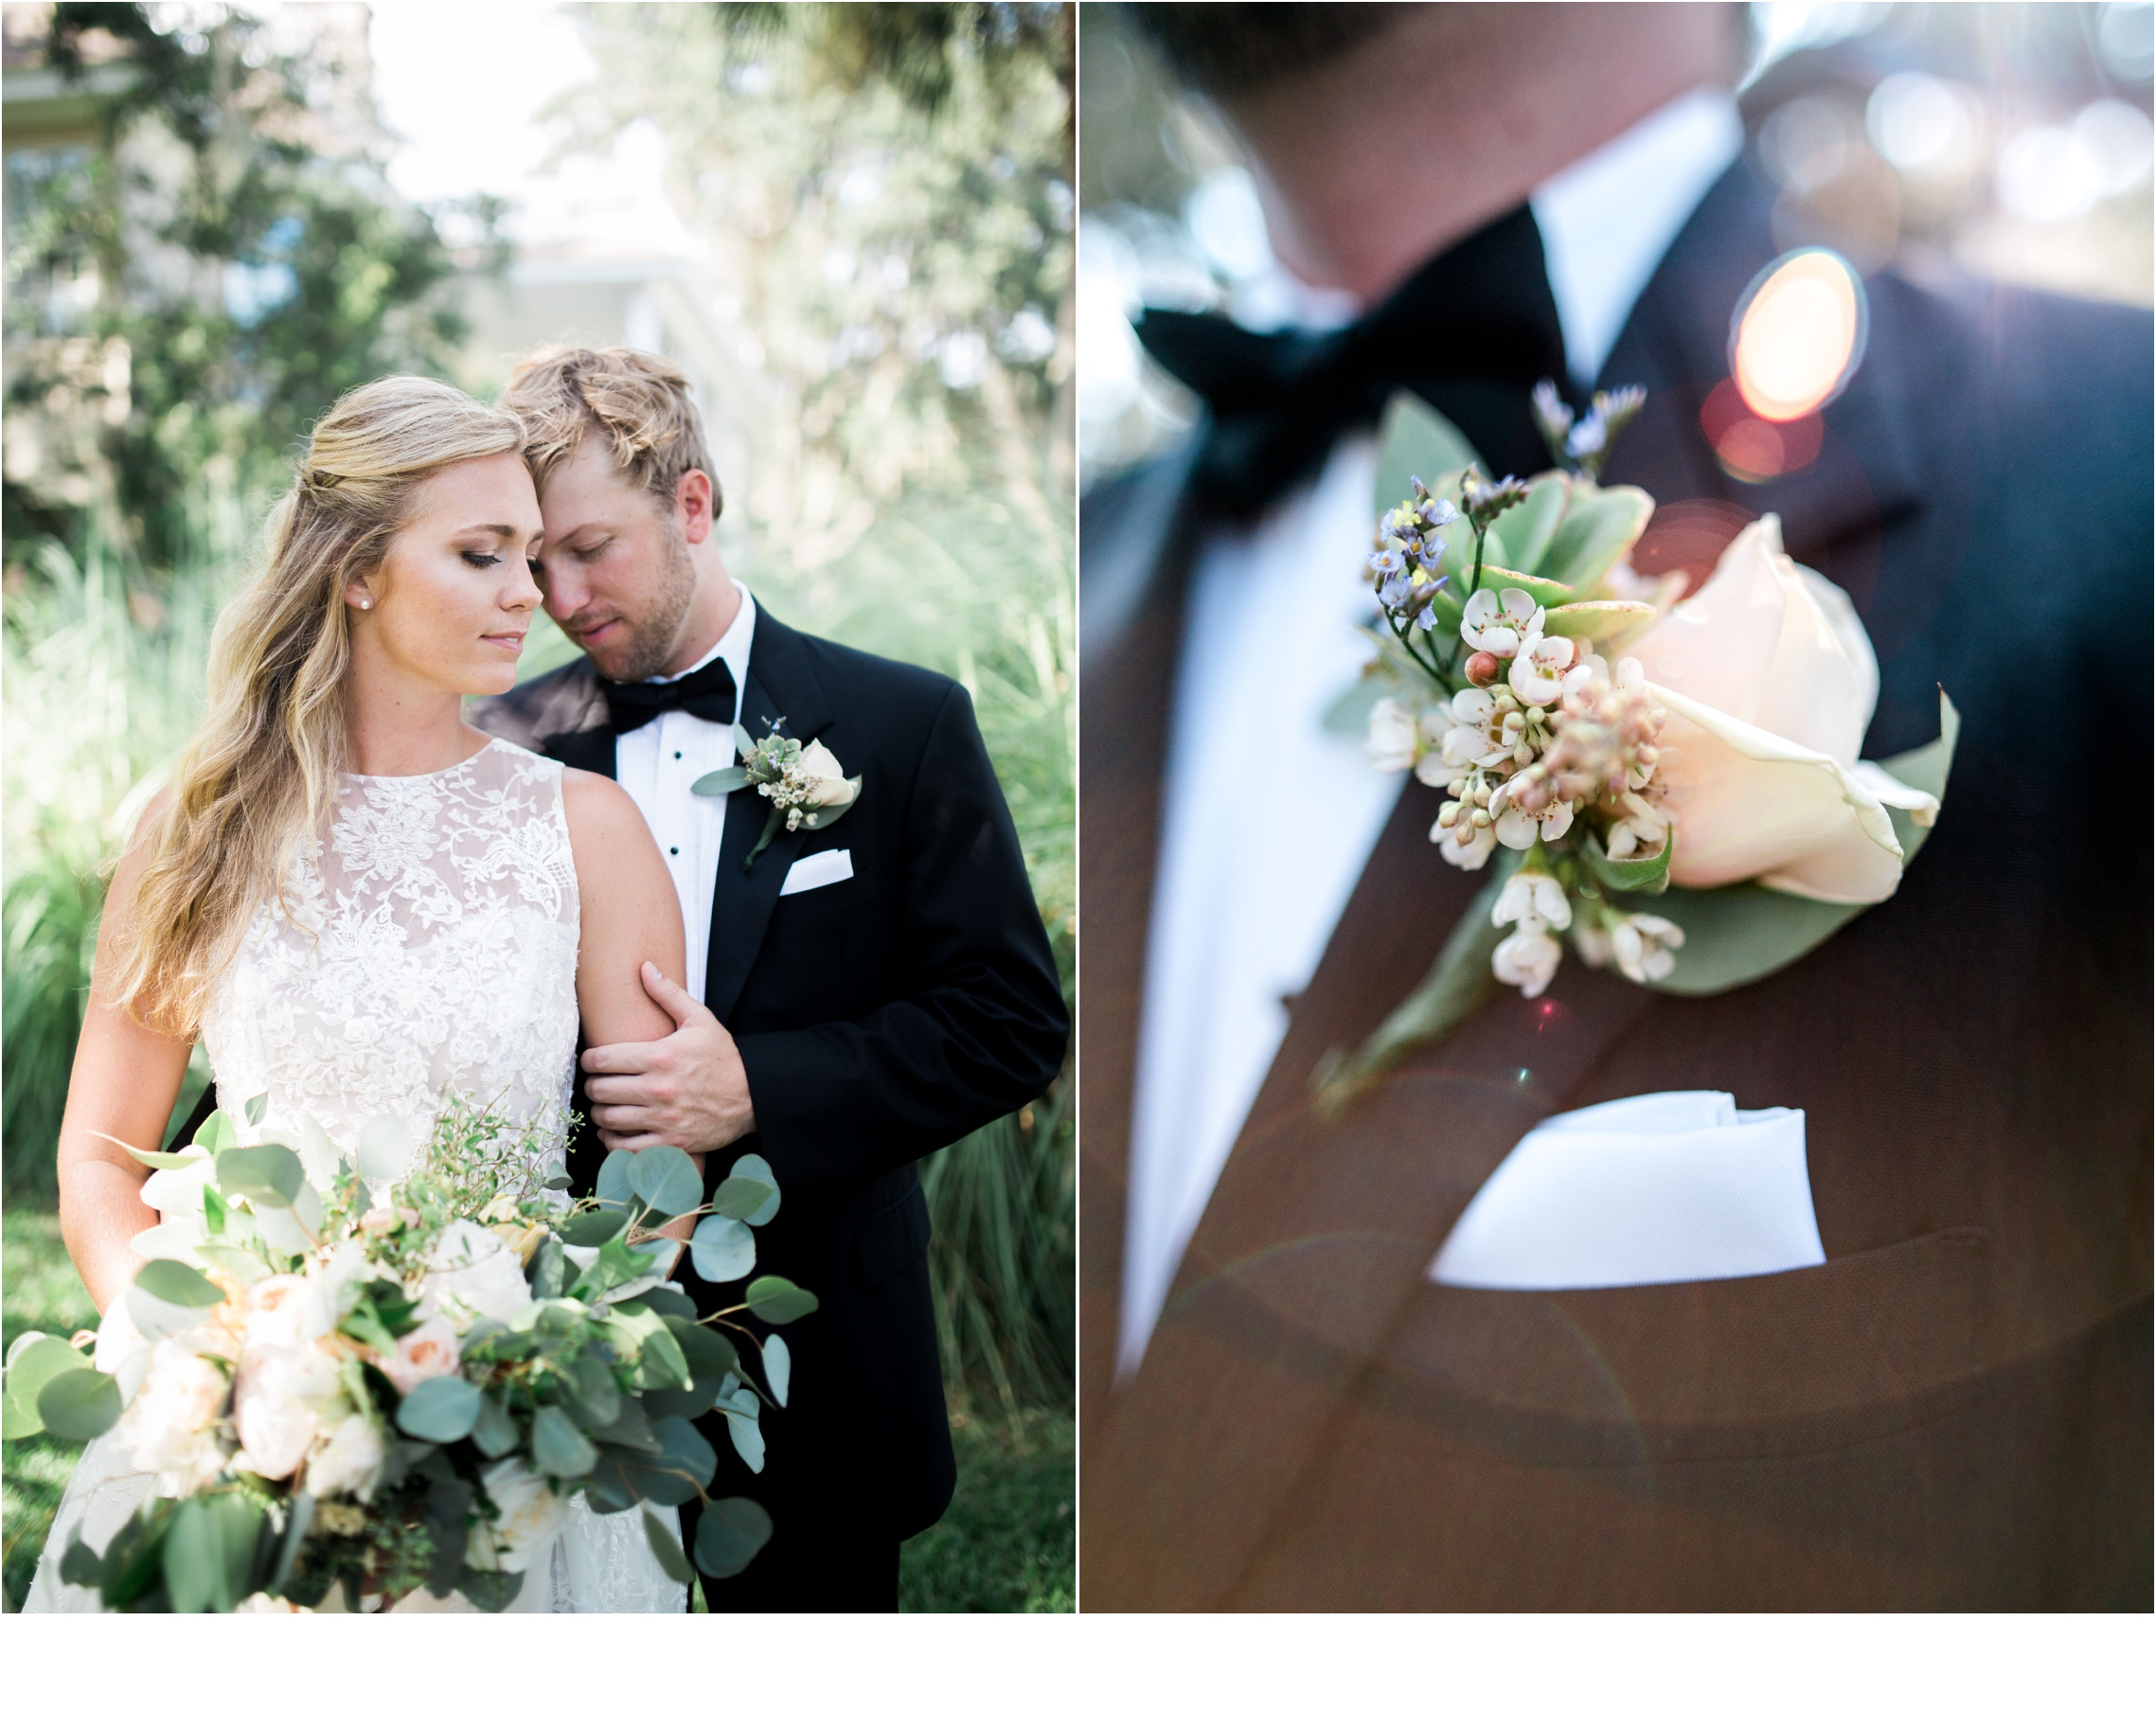 Rainey_Gregg_Photography_St._Simons_Island_Georgia_California_Wedding_Portrait_Photography_0044.jpg